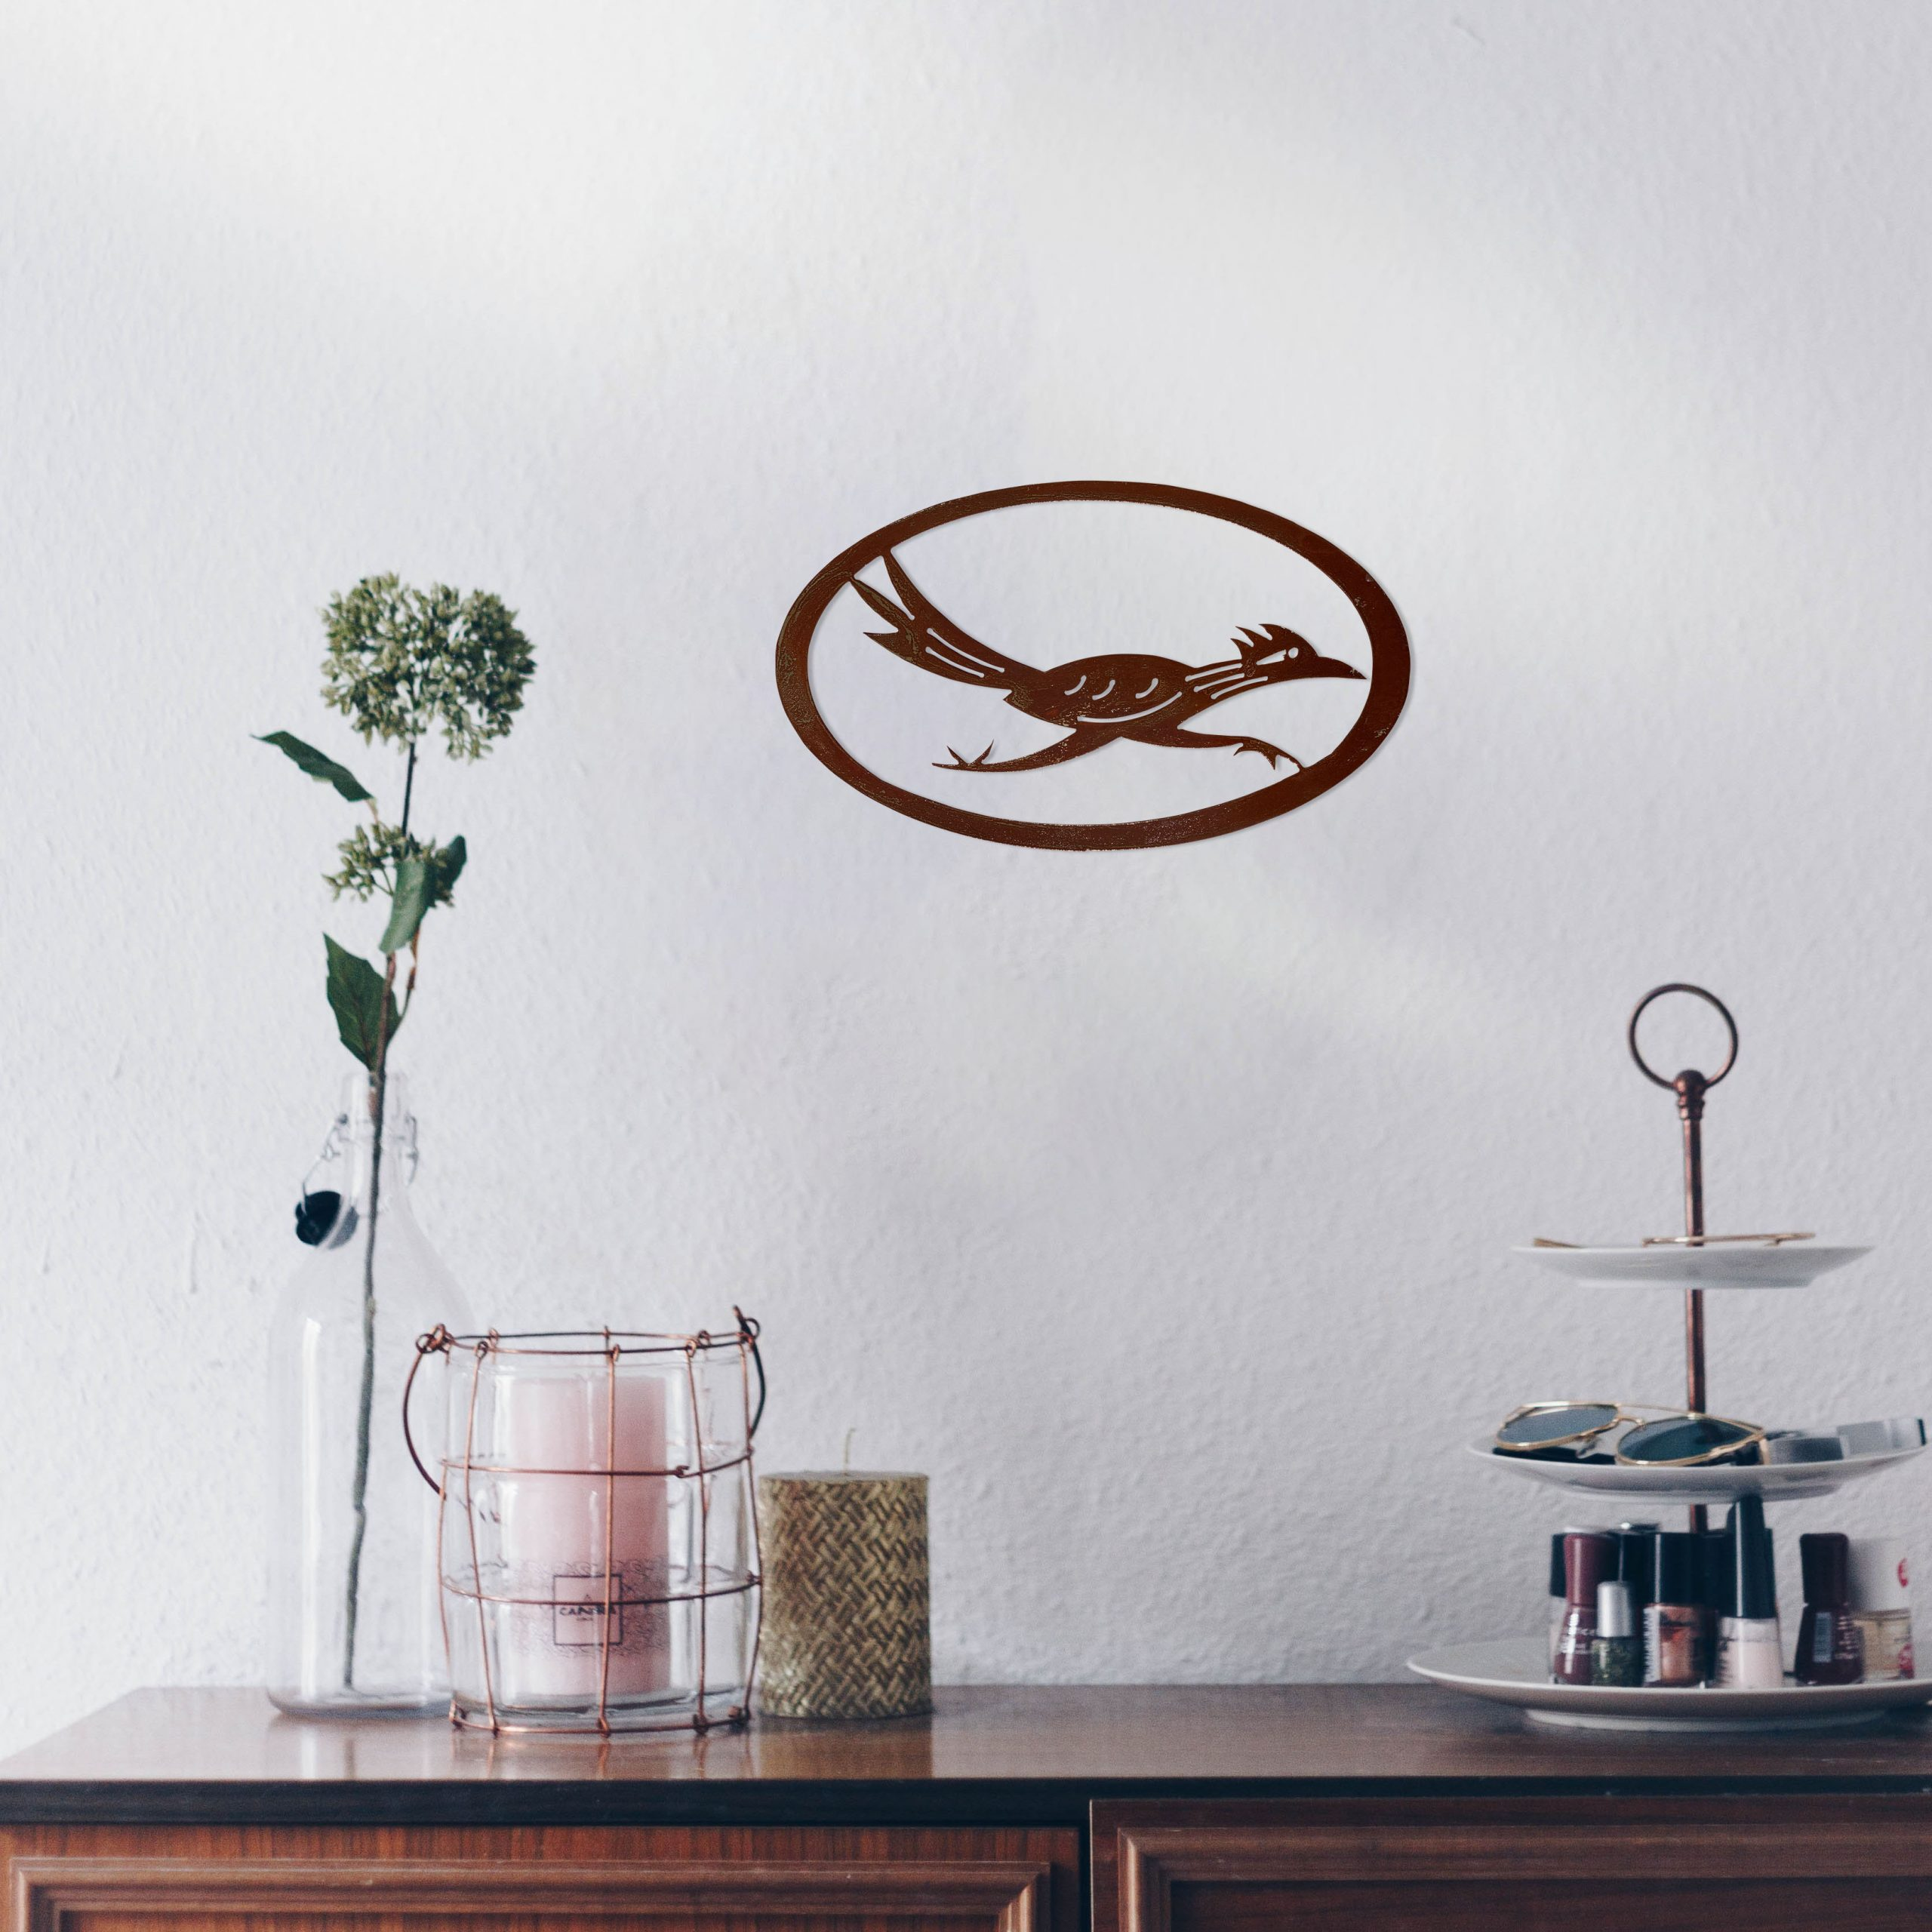 rust-road-runner-oval-over-makeup-table-scaled